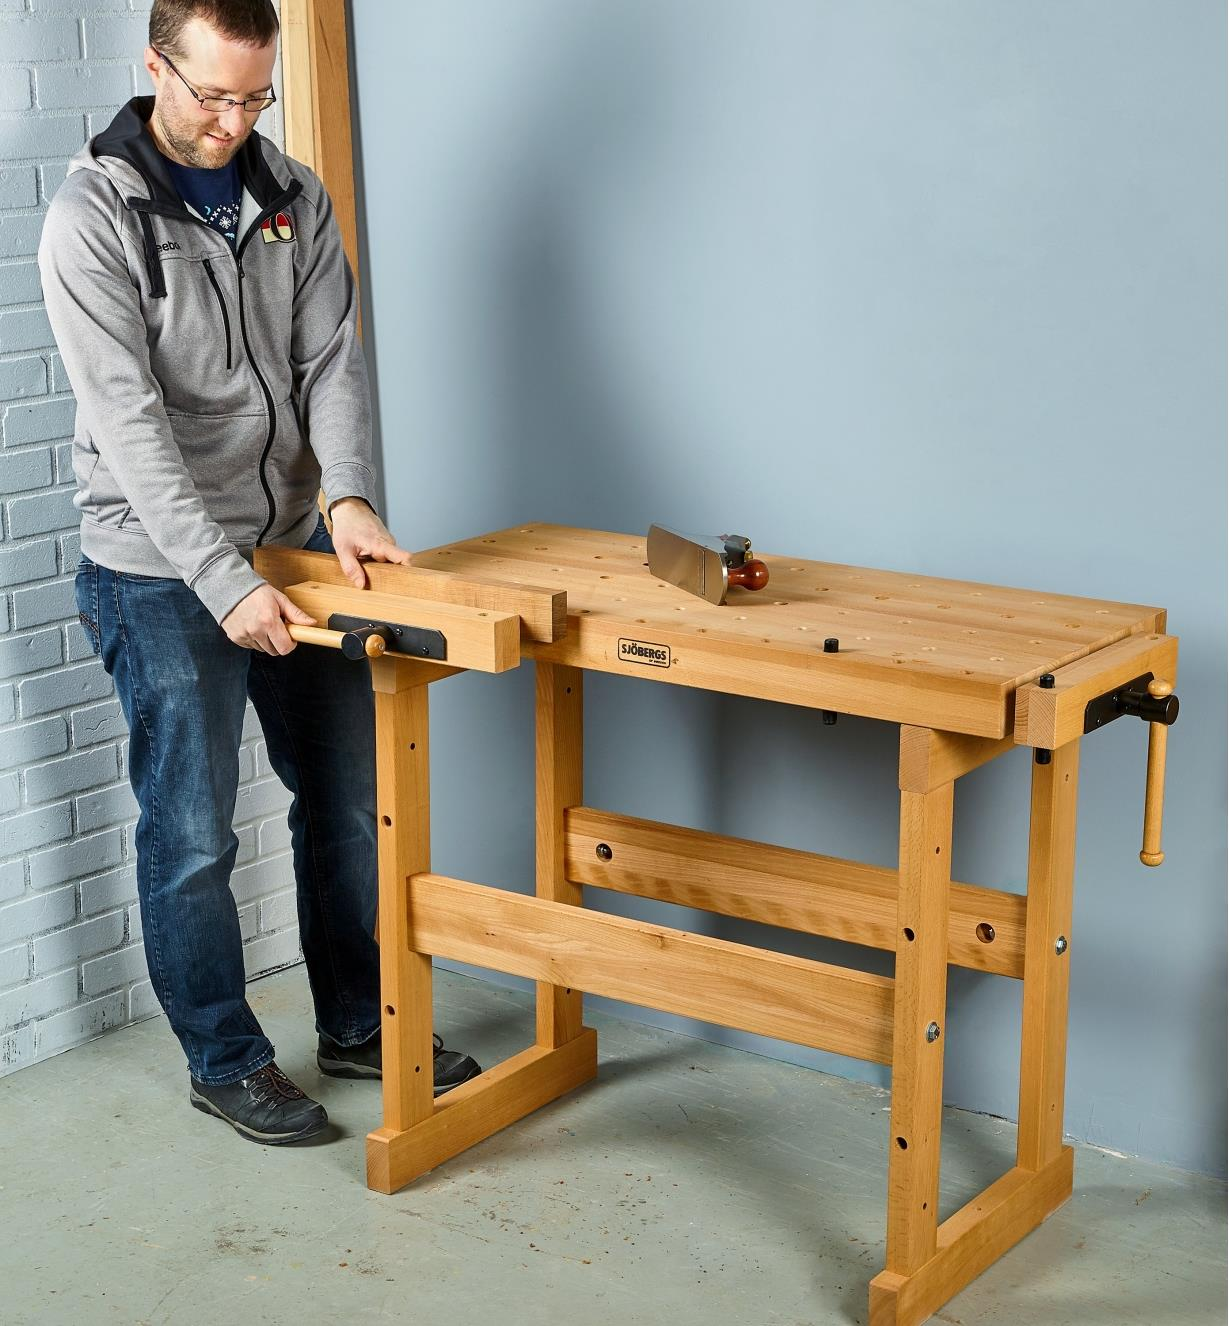 A man securing a block of wood in the front vise of the Sjöbergs apartment workbench